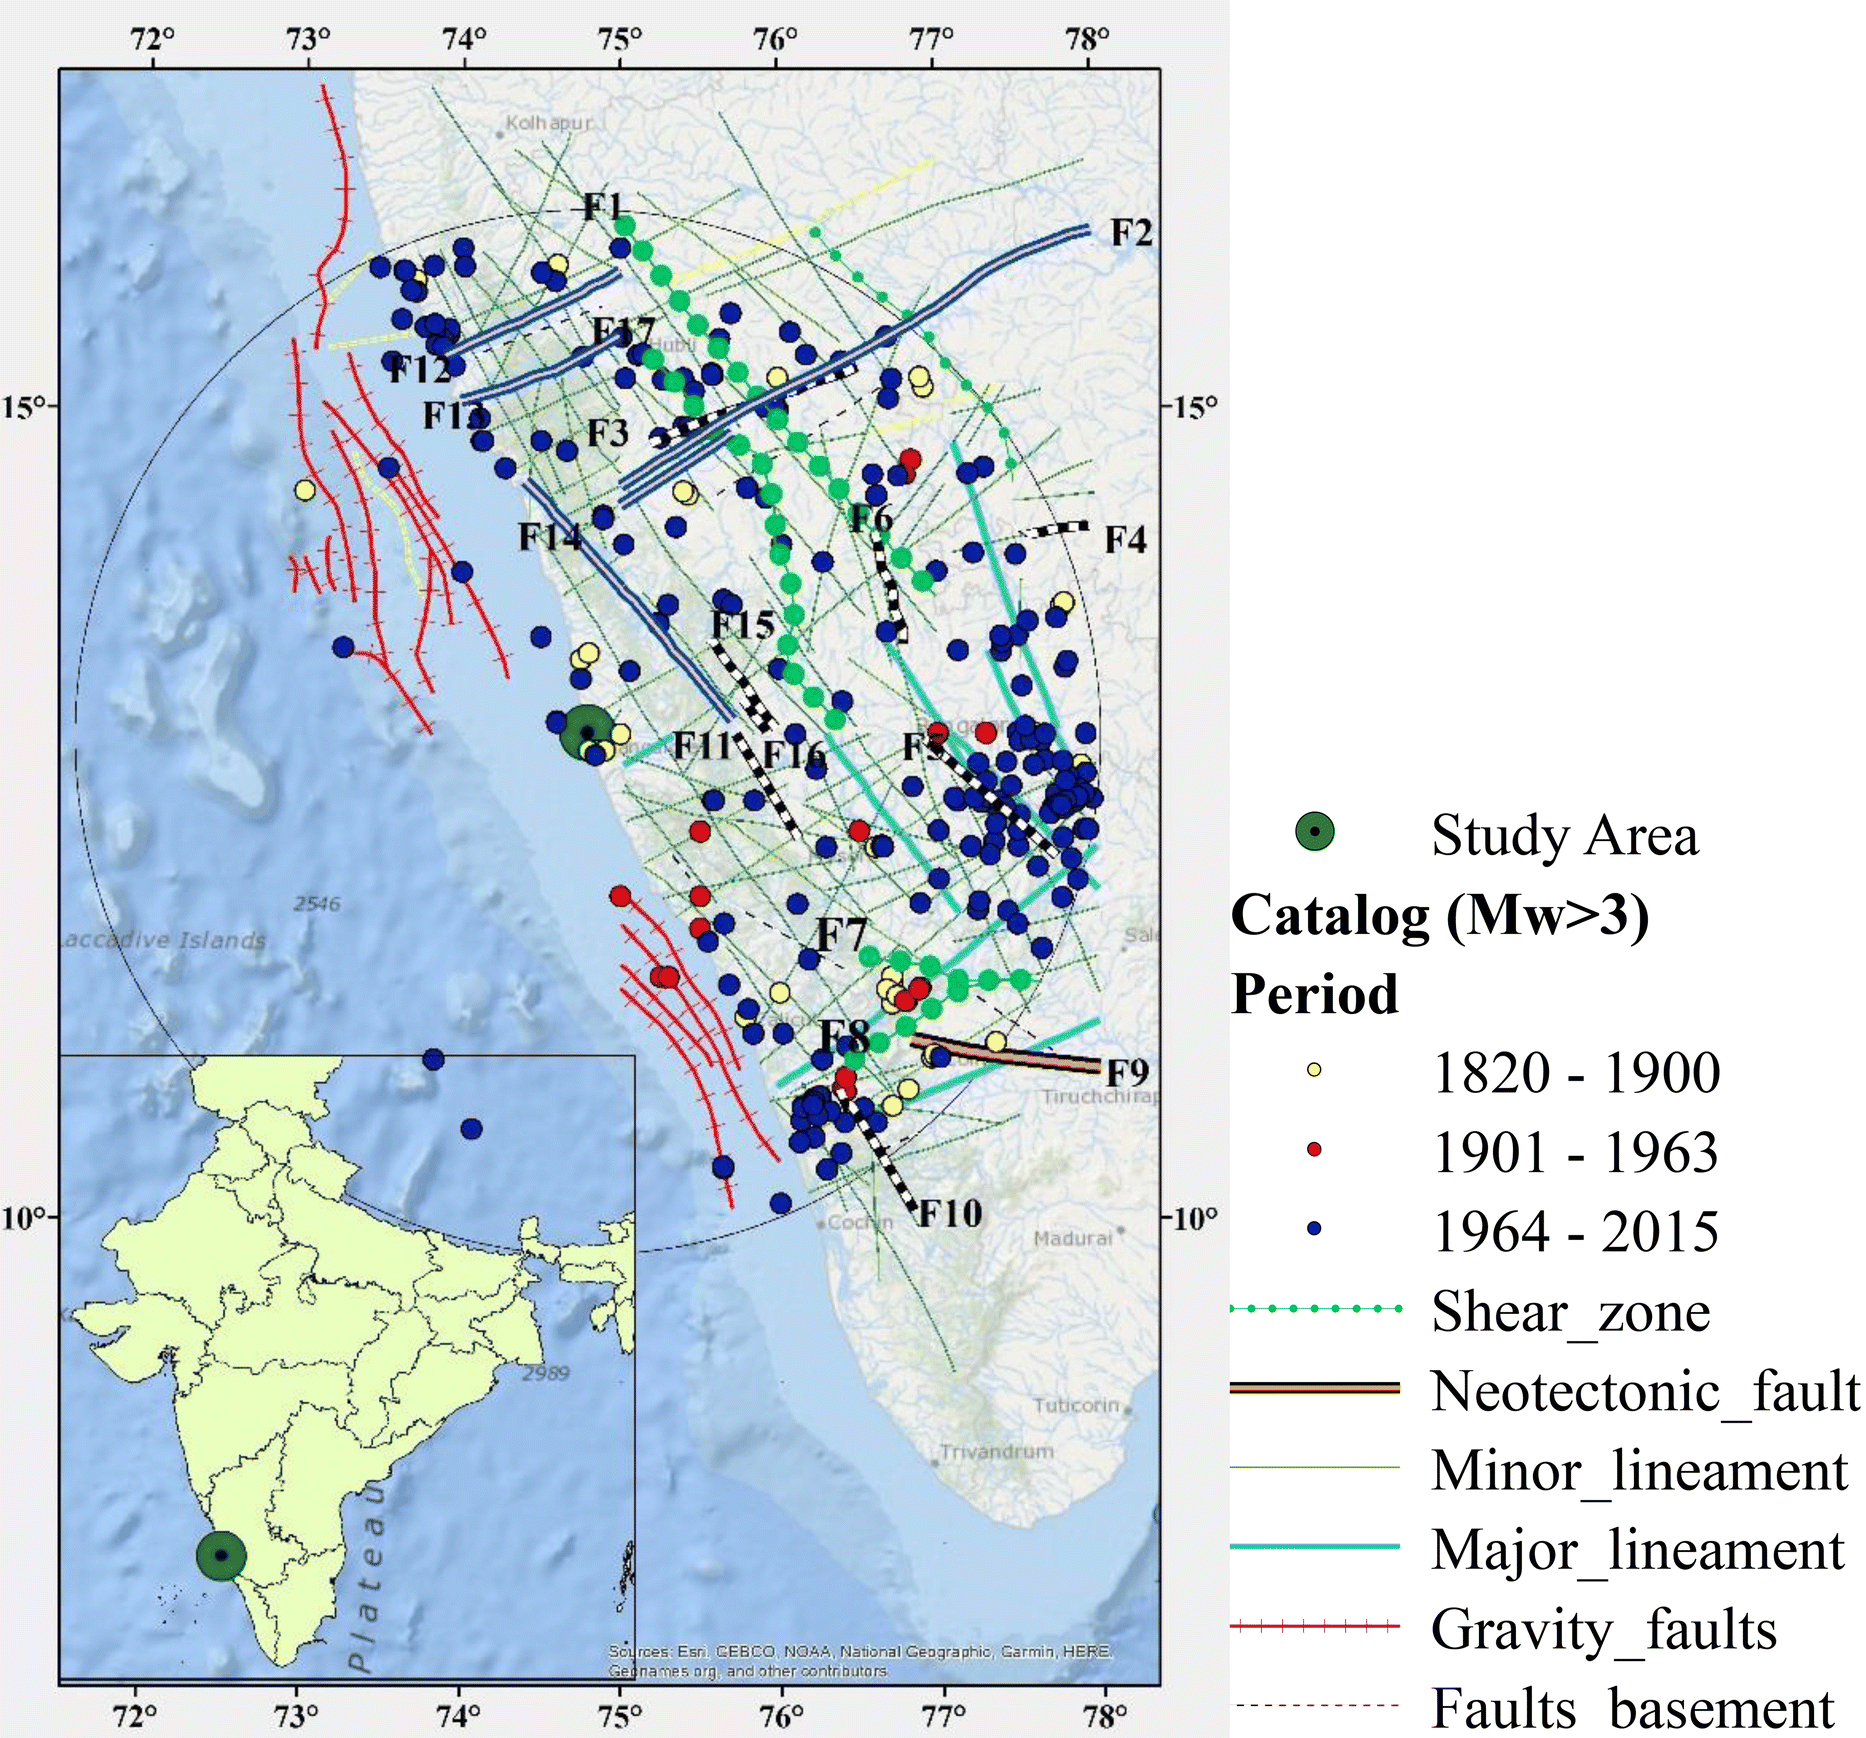 Probabilistic Seismic Hazard Assessment of Mangalore and Its